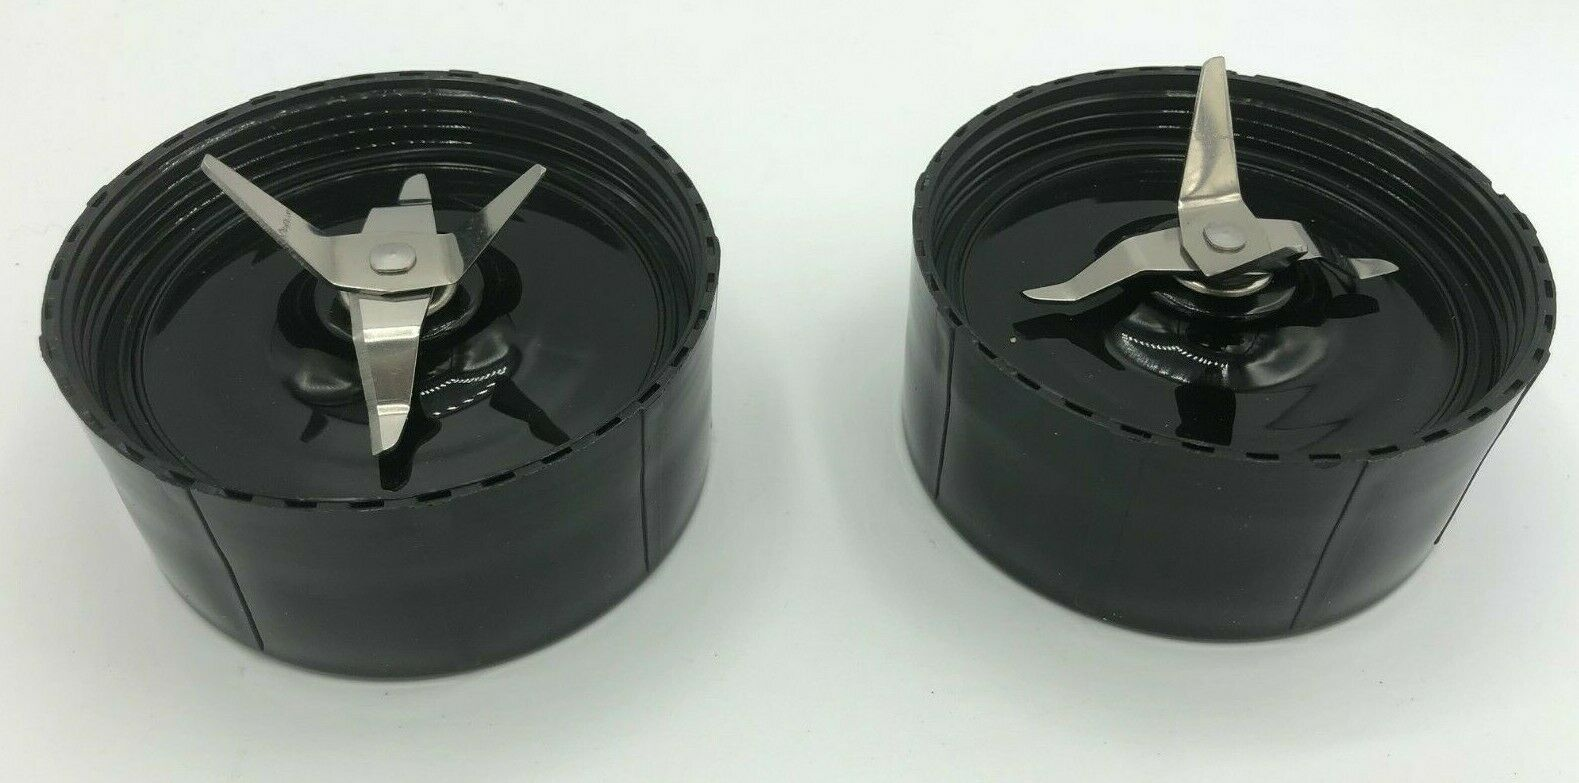 2 replacement cross blades